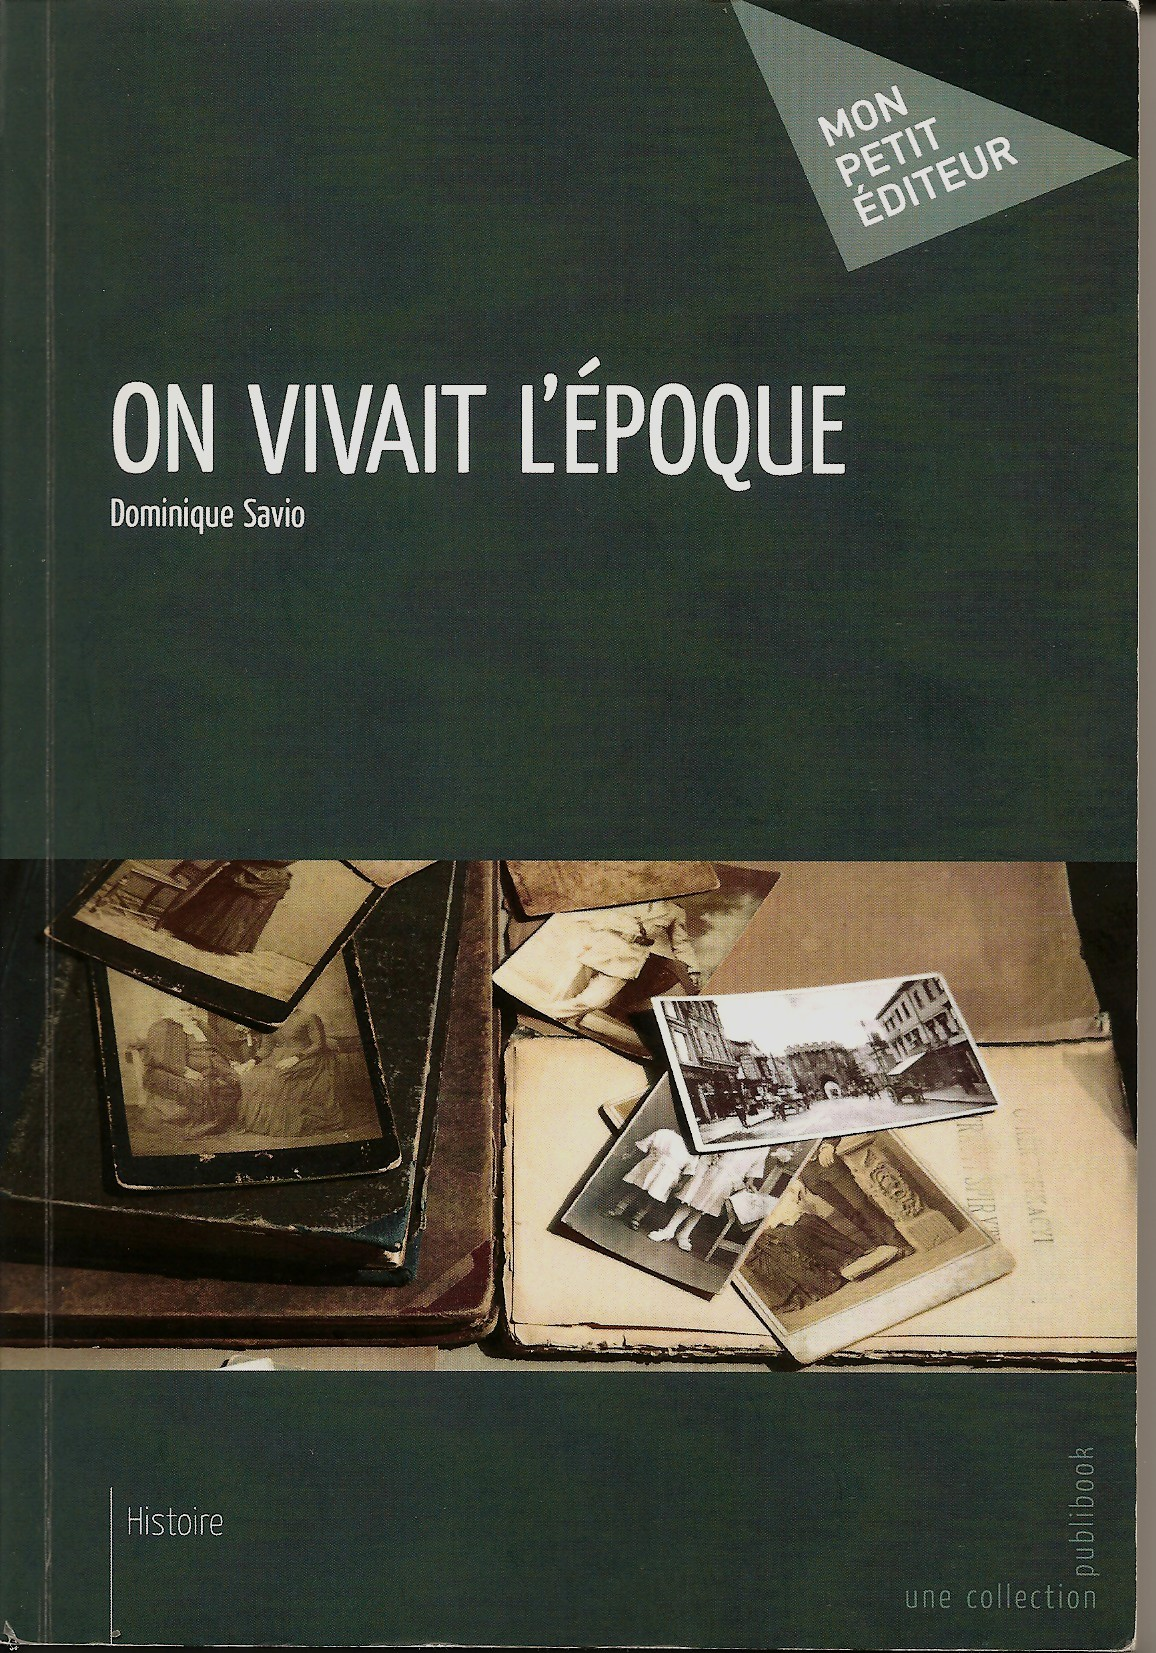 On vivait l epoque